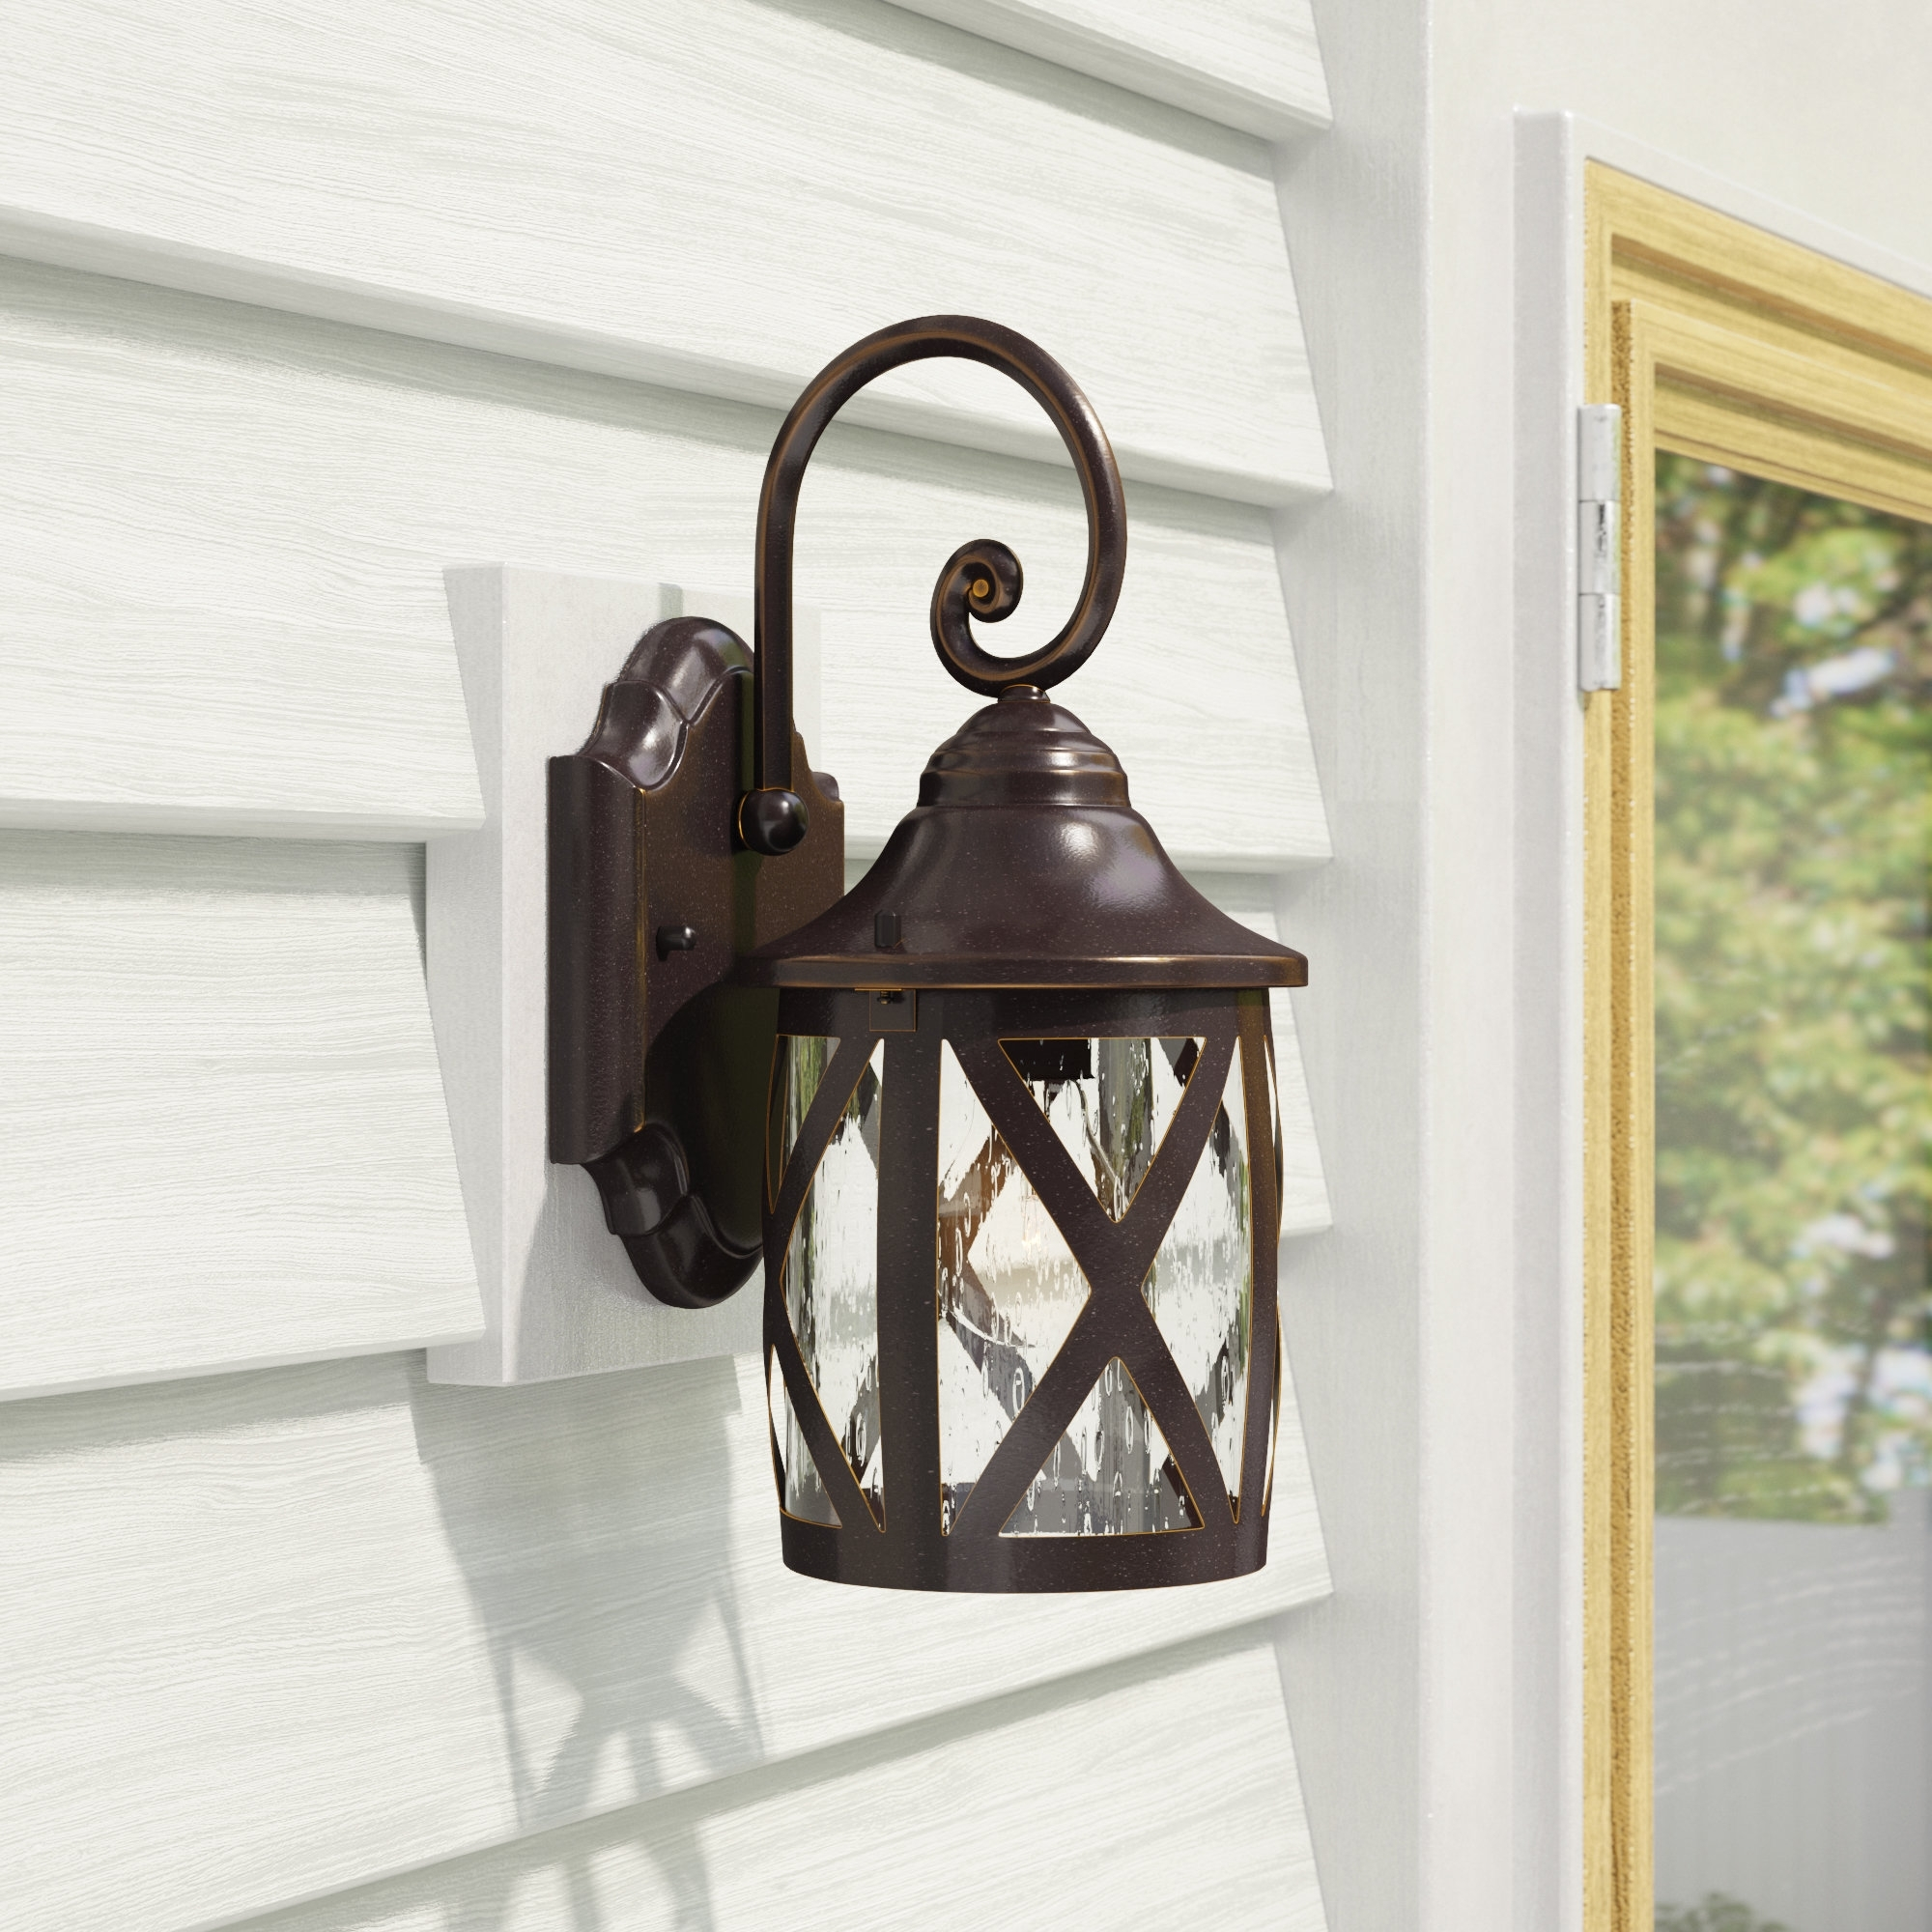 Laurel Foundry Modern Farmhouse Landon 1 Light Outdoor Wall Lantern With Regard To Fashionable Outdoor Vinyl Lanterns (View 18 of 20)